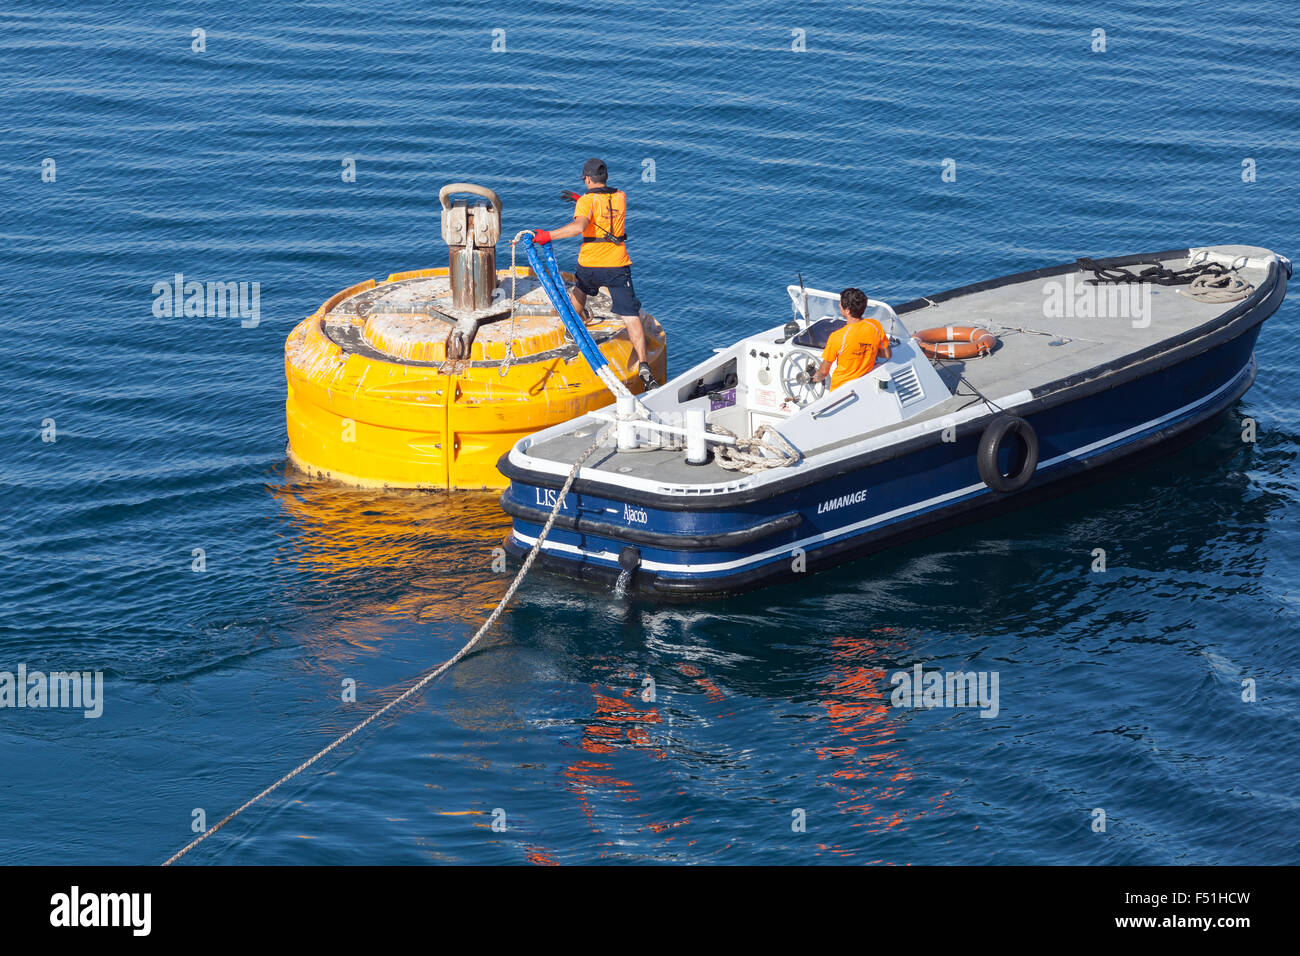 Ajaccio, France - June 30, 2015: Port operations, men at work. Motorboat is used for rope attachment on yellow mooring - Stock Image